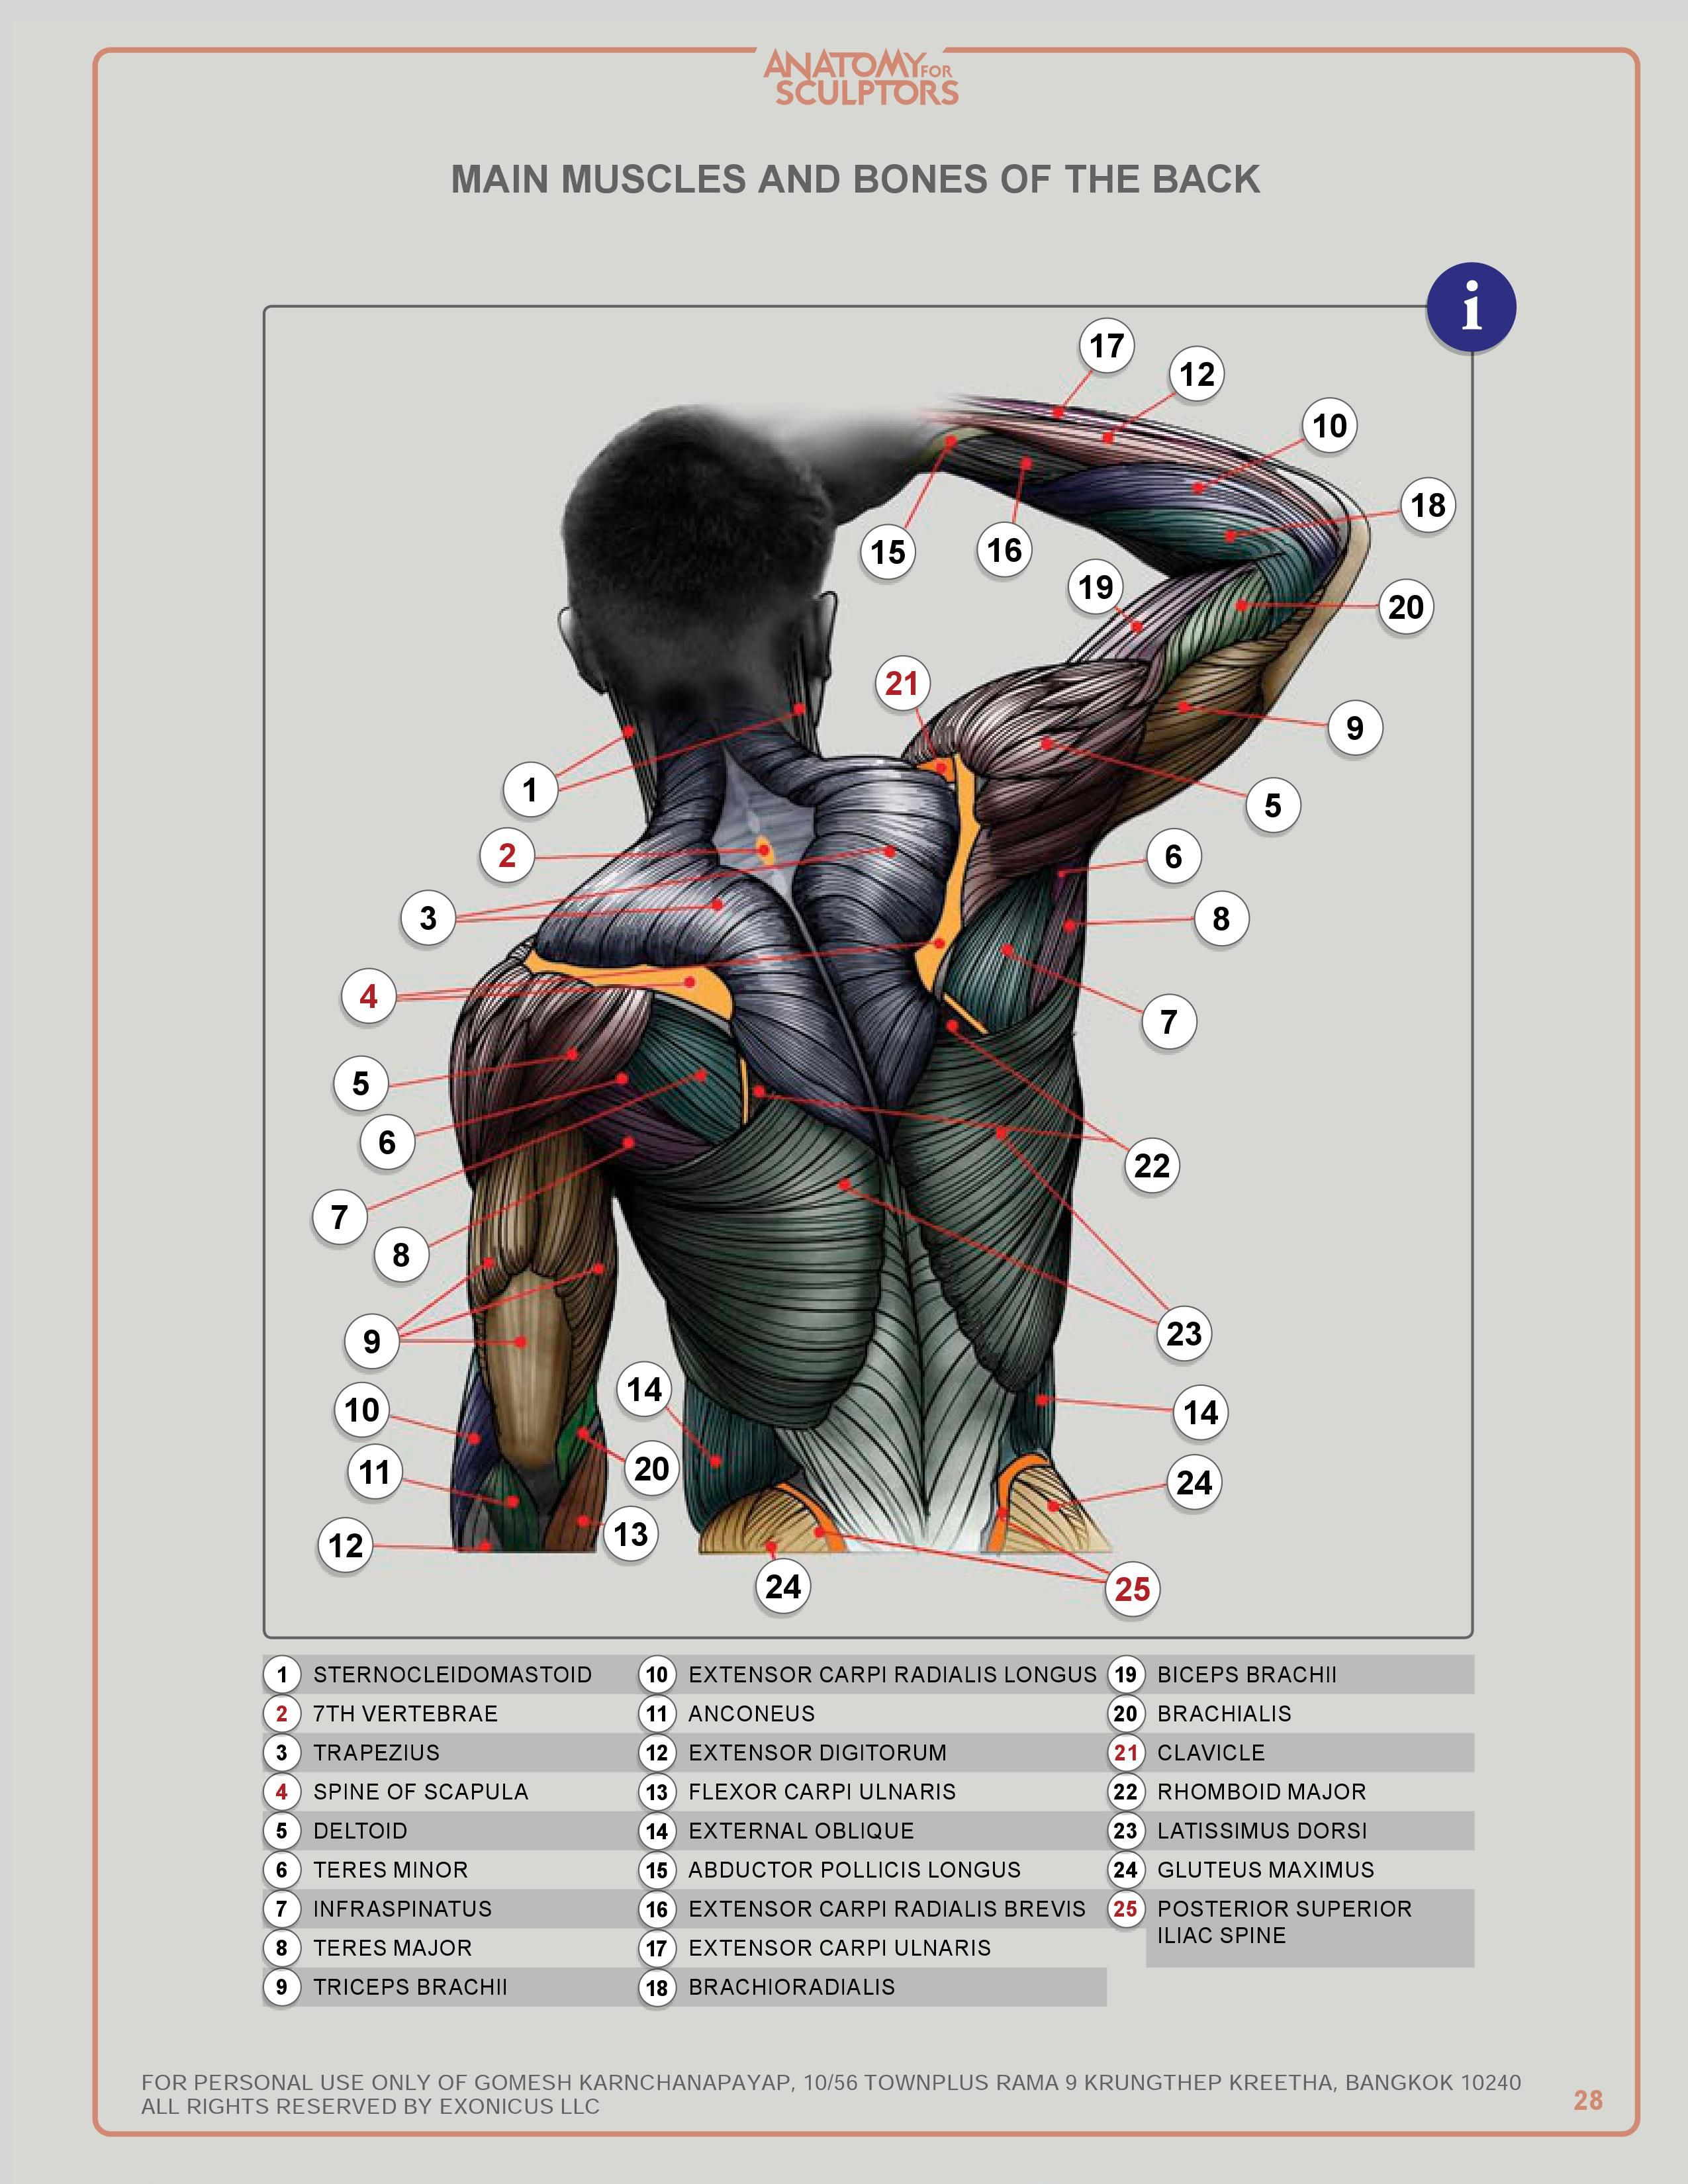 MAIN MUSCLES AND BONES OF THE BACK | Guides and tutorials ...